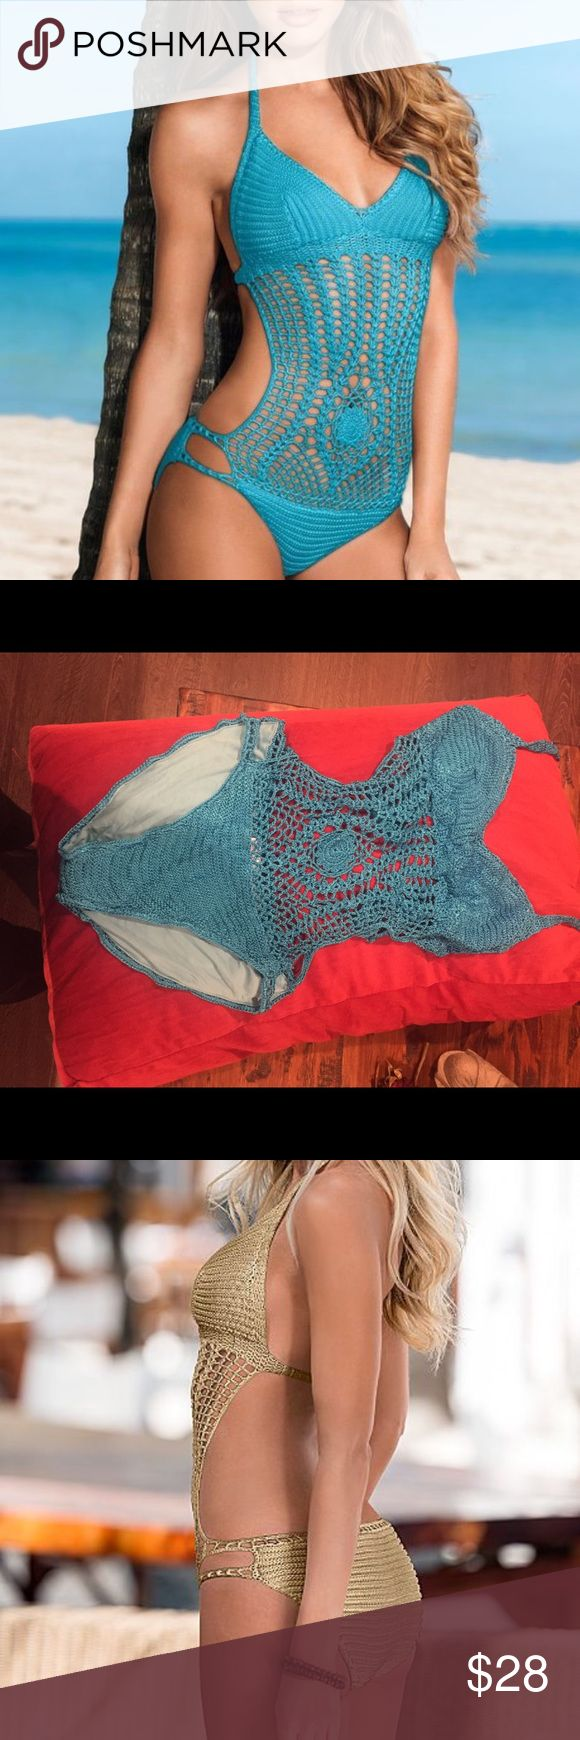 Crochet bathing suit. Cute and brand new turquoise crochet one piece bathing suit. Super cute! VENUS Swim One Pieces